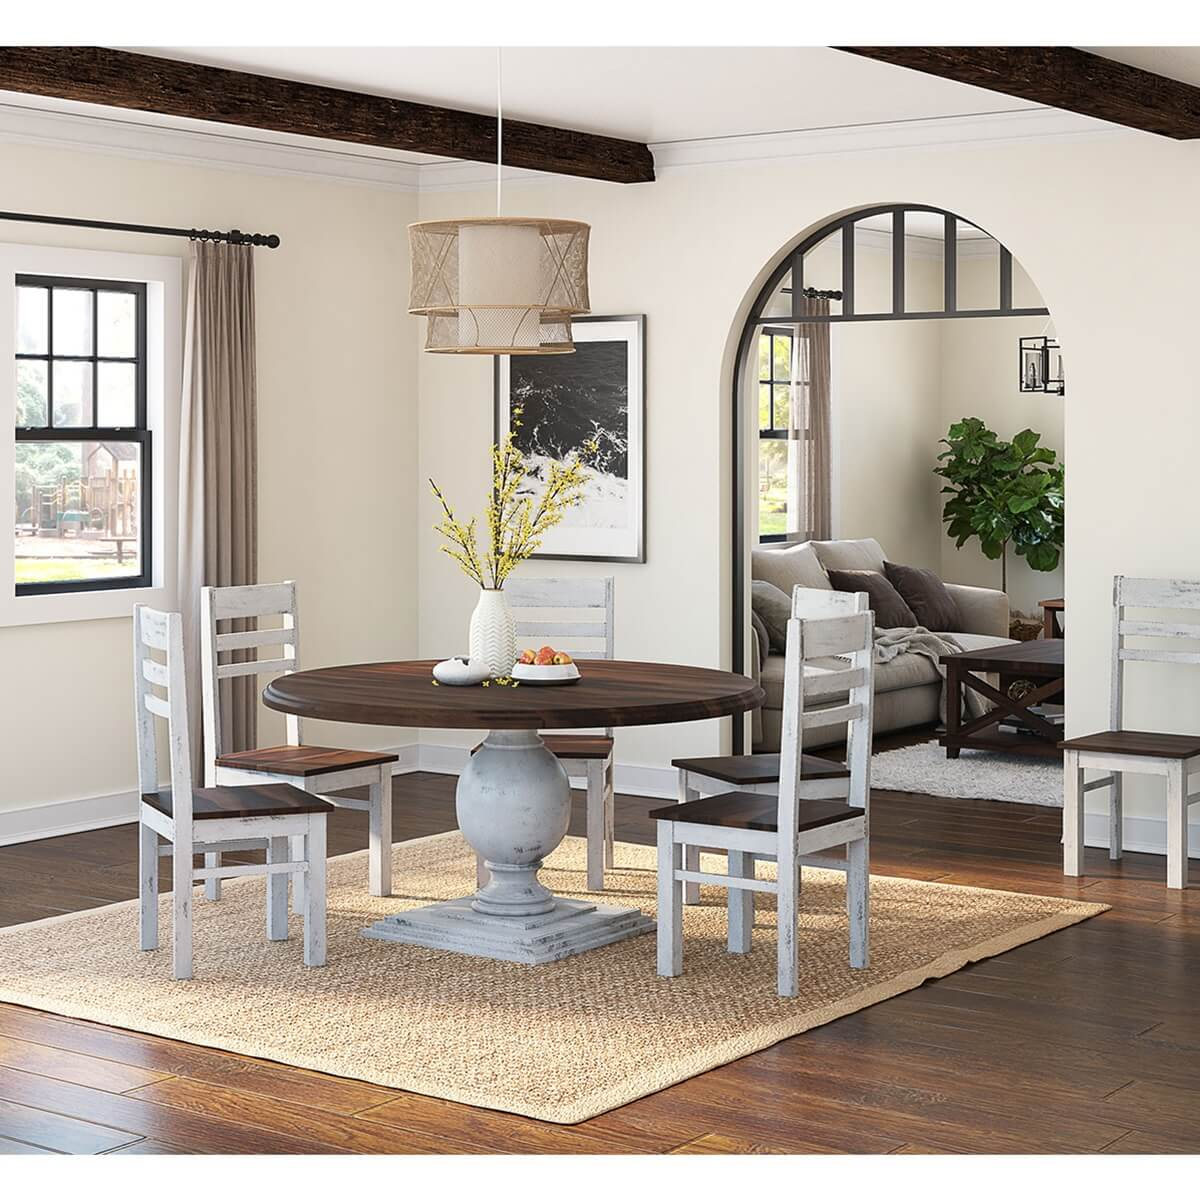 Illinois Modern Two Tone Large Round Dining Table With Chairs Set - Large round dining table 8 chairs